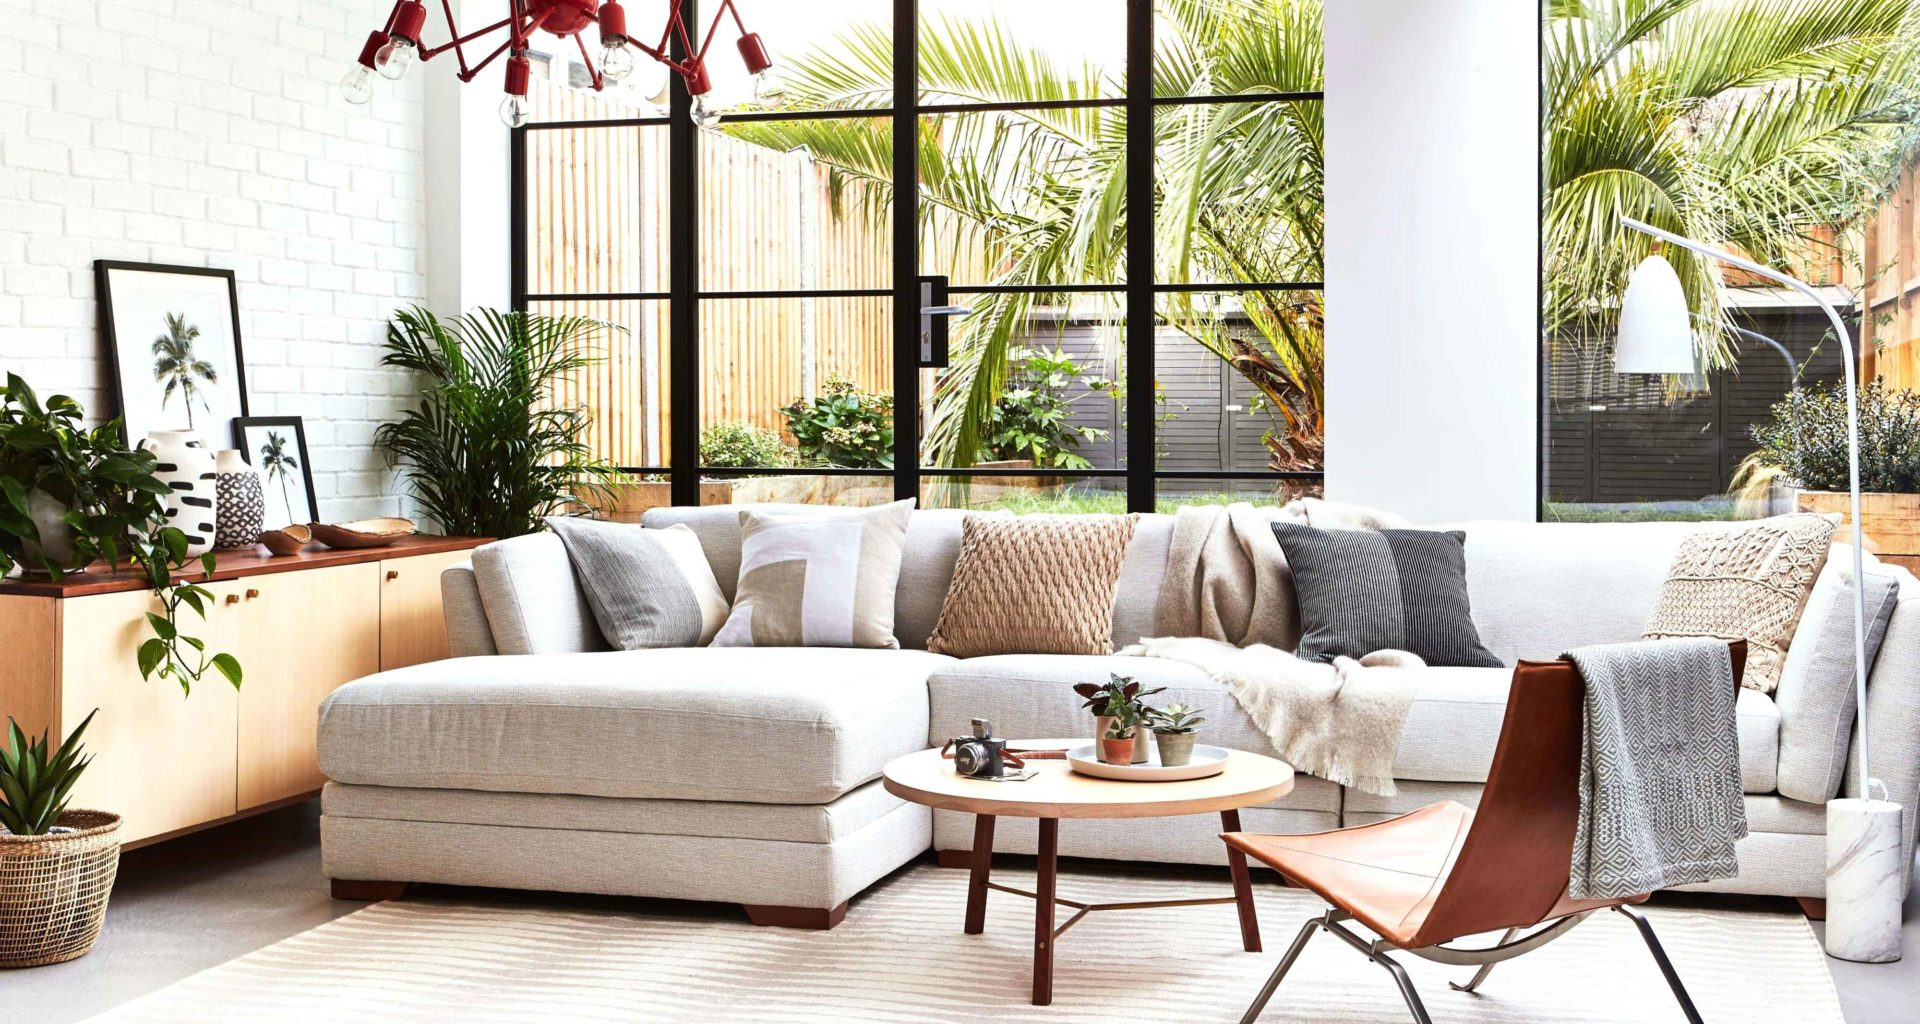 Styles For Living Room 5 Couch Styles For Your Living Room From Boho To Industrial